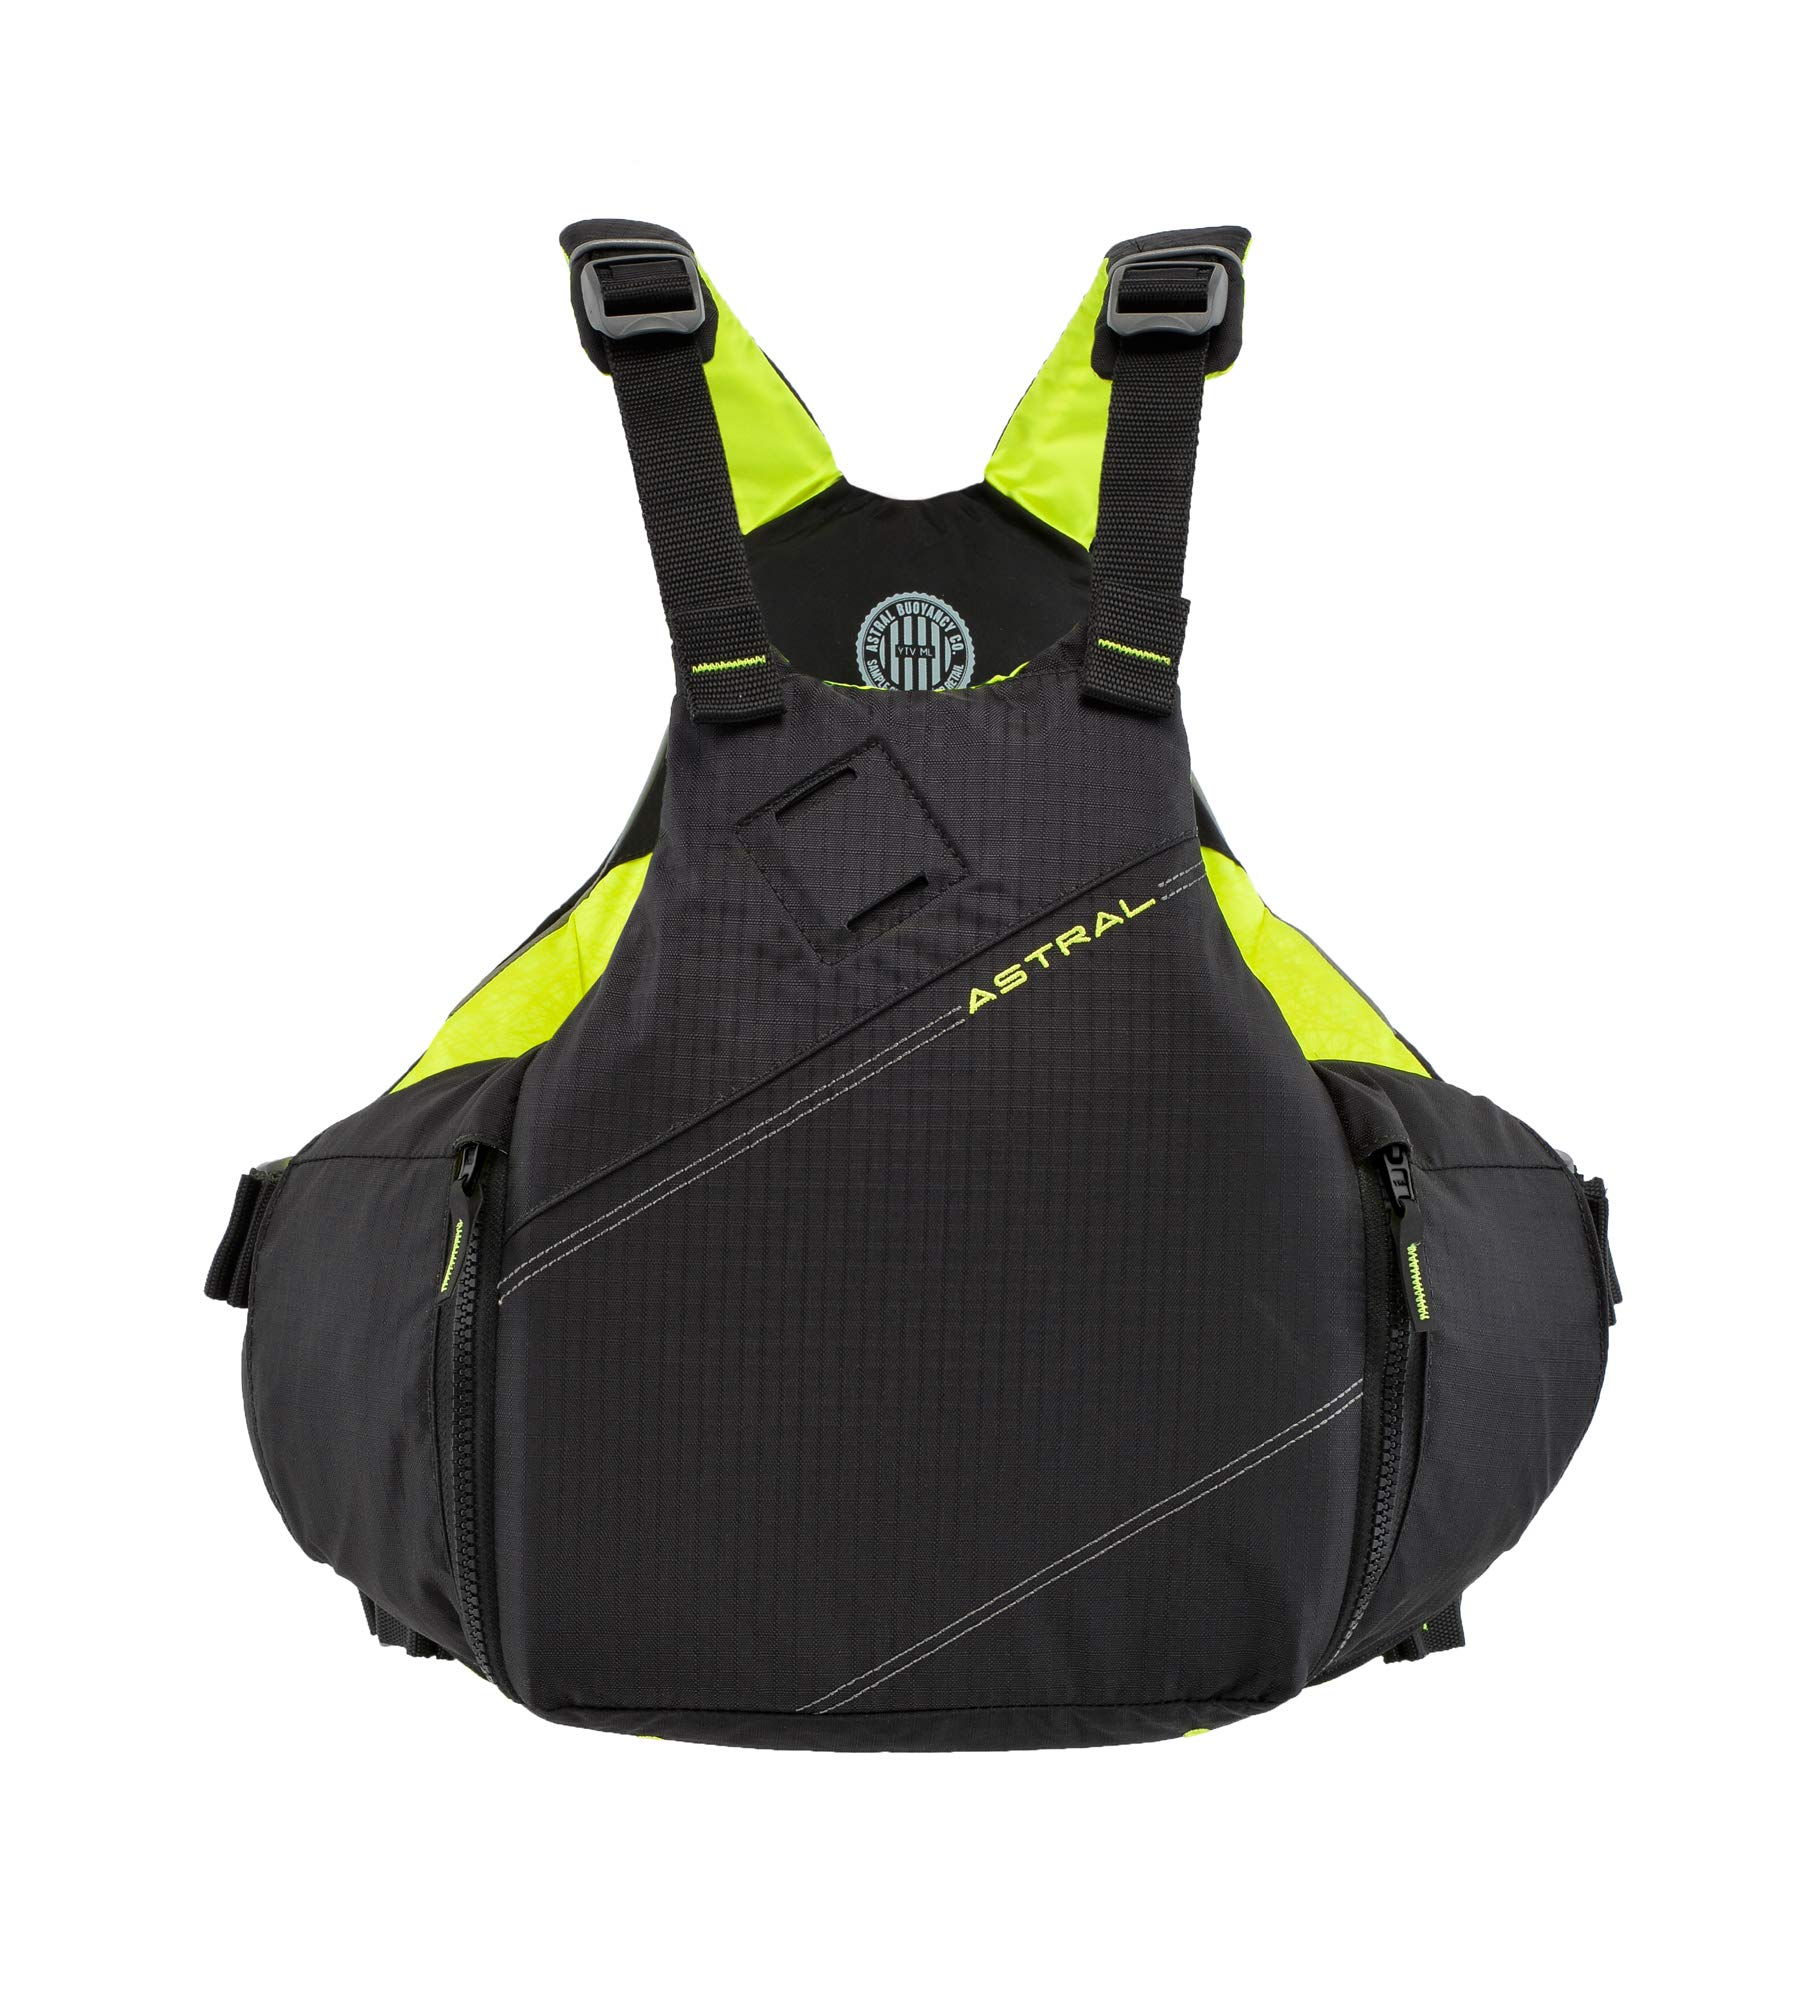 Astral YTV Life Jacket PFD for Whitewater, Touring Kayaking, Sailing and Stand Up Paddle Boarding, Slate Black, Large/X-Large by Astral